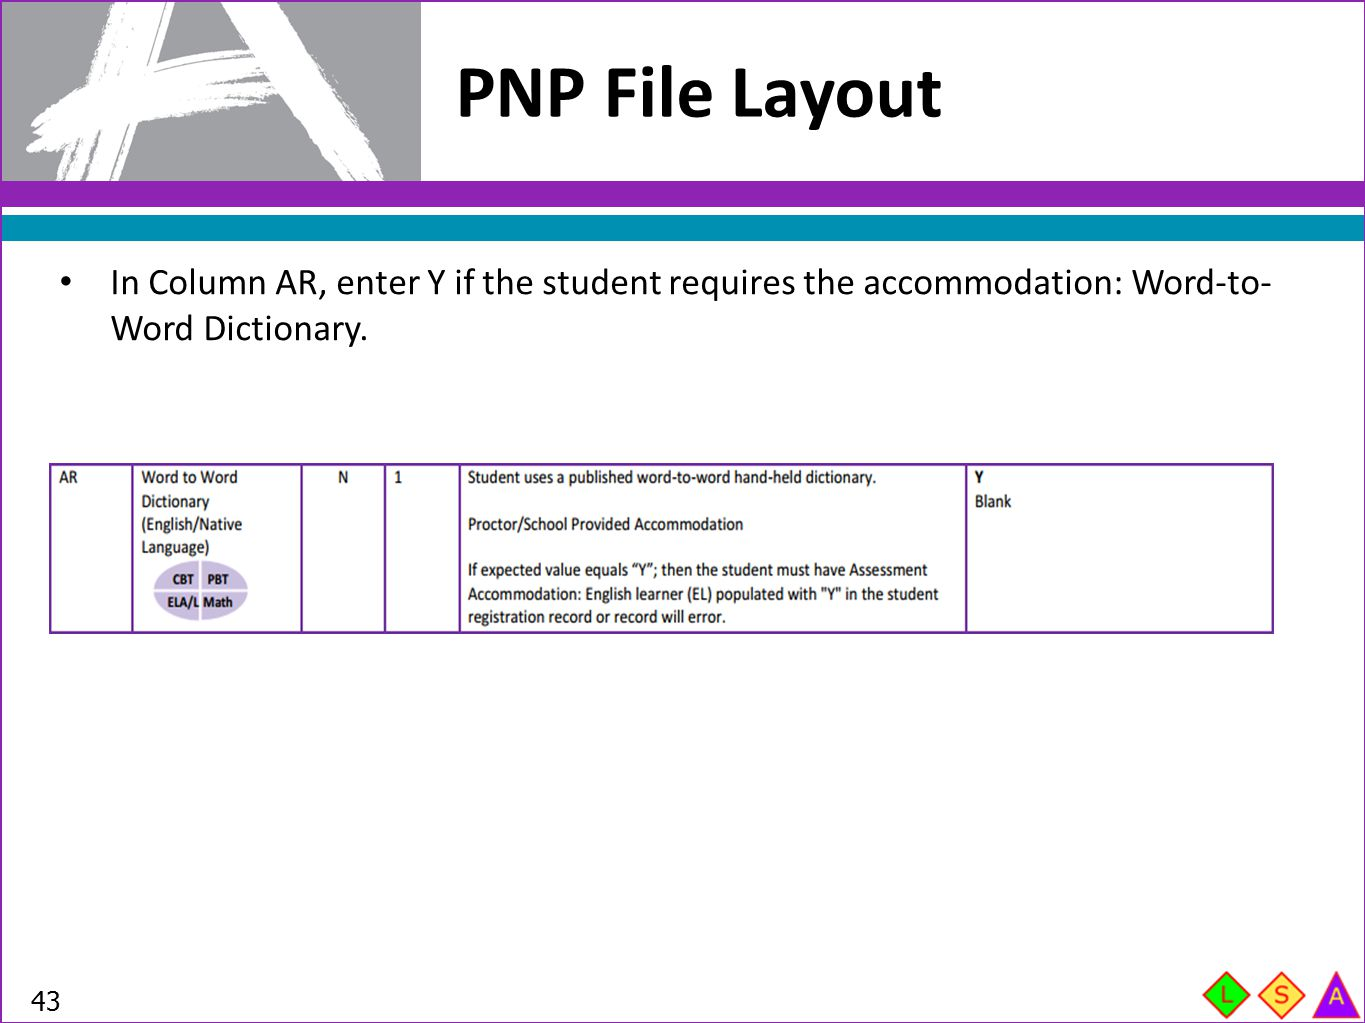 PNP File Layout In Column AR, enter Y if the student requires the accommodation: Word-to-Word Dictionary.